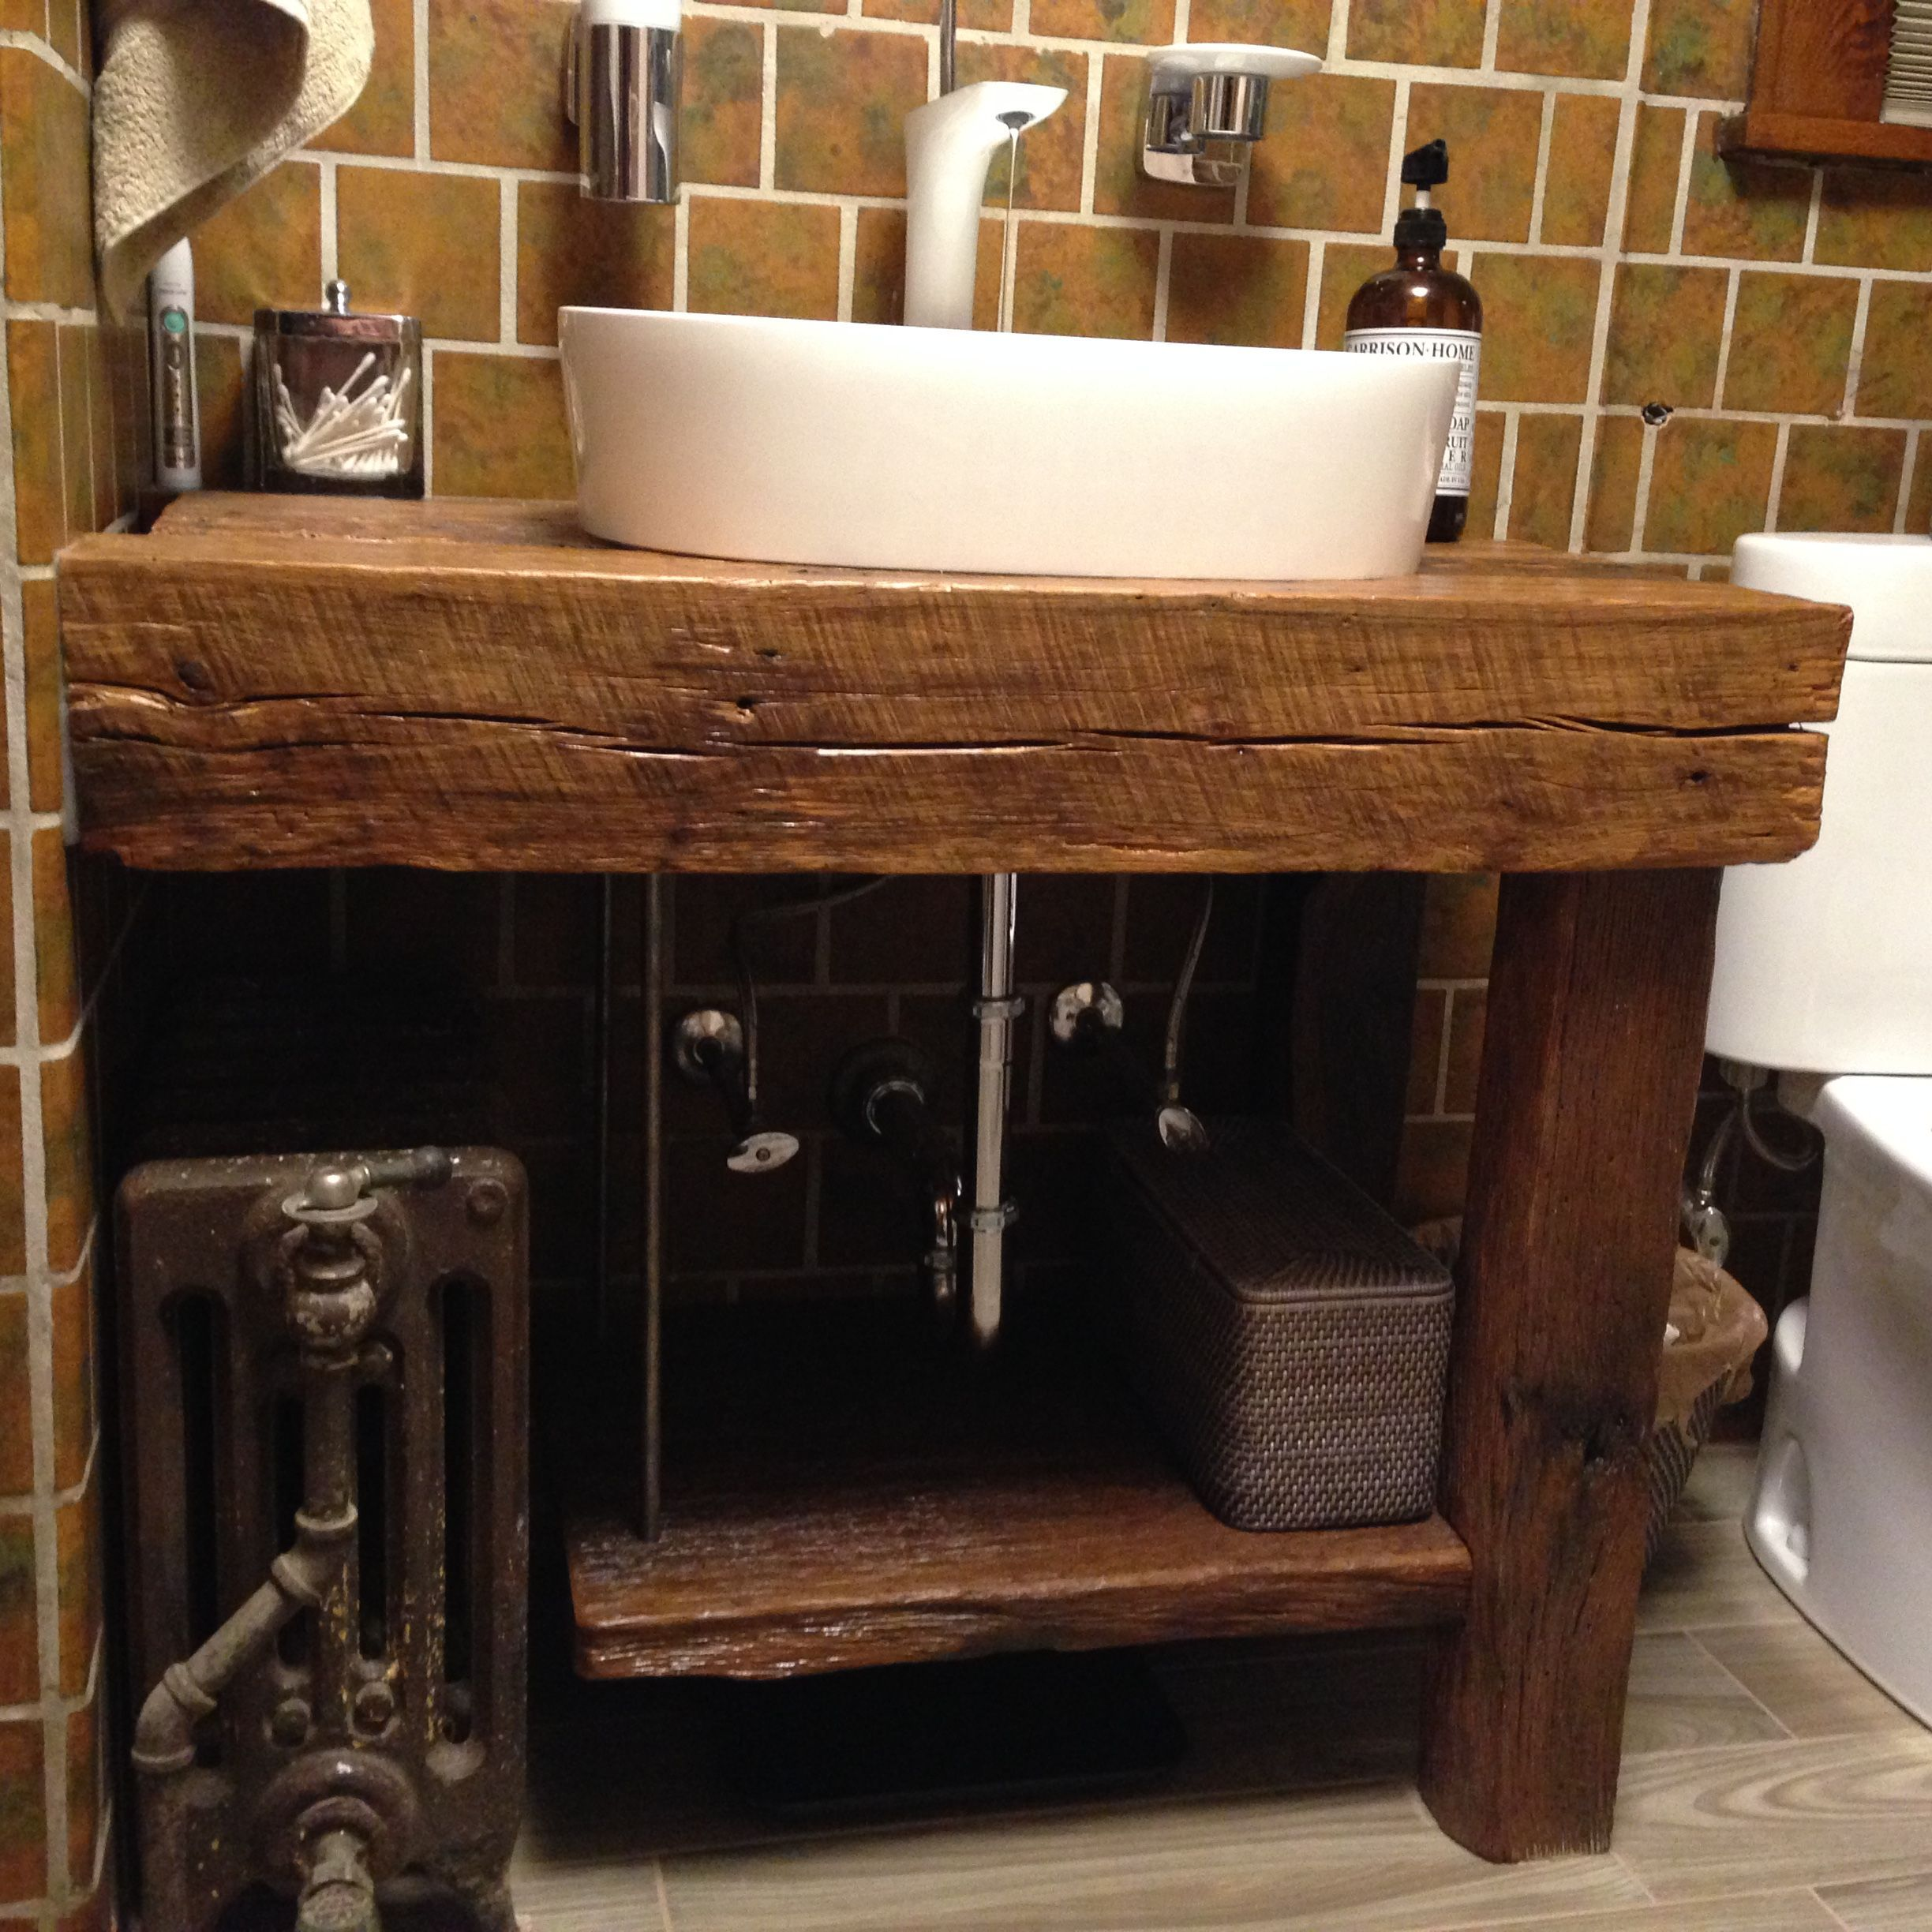 Rustic Bath Vanity   Reclaimed BarnwoodCustom Bathroom Vanities   CustomMade com. Rustic Vanities For Bathrooms. Home Design Ideas